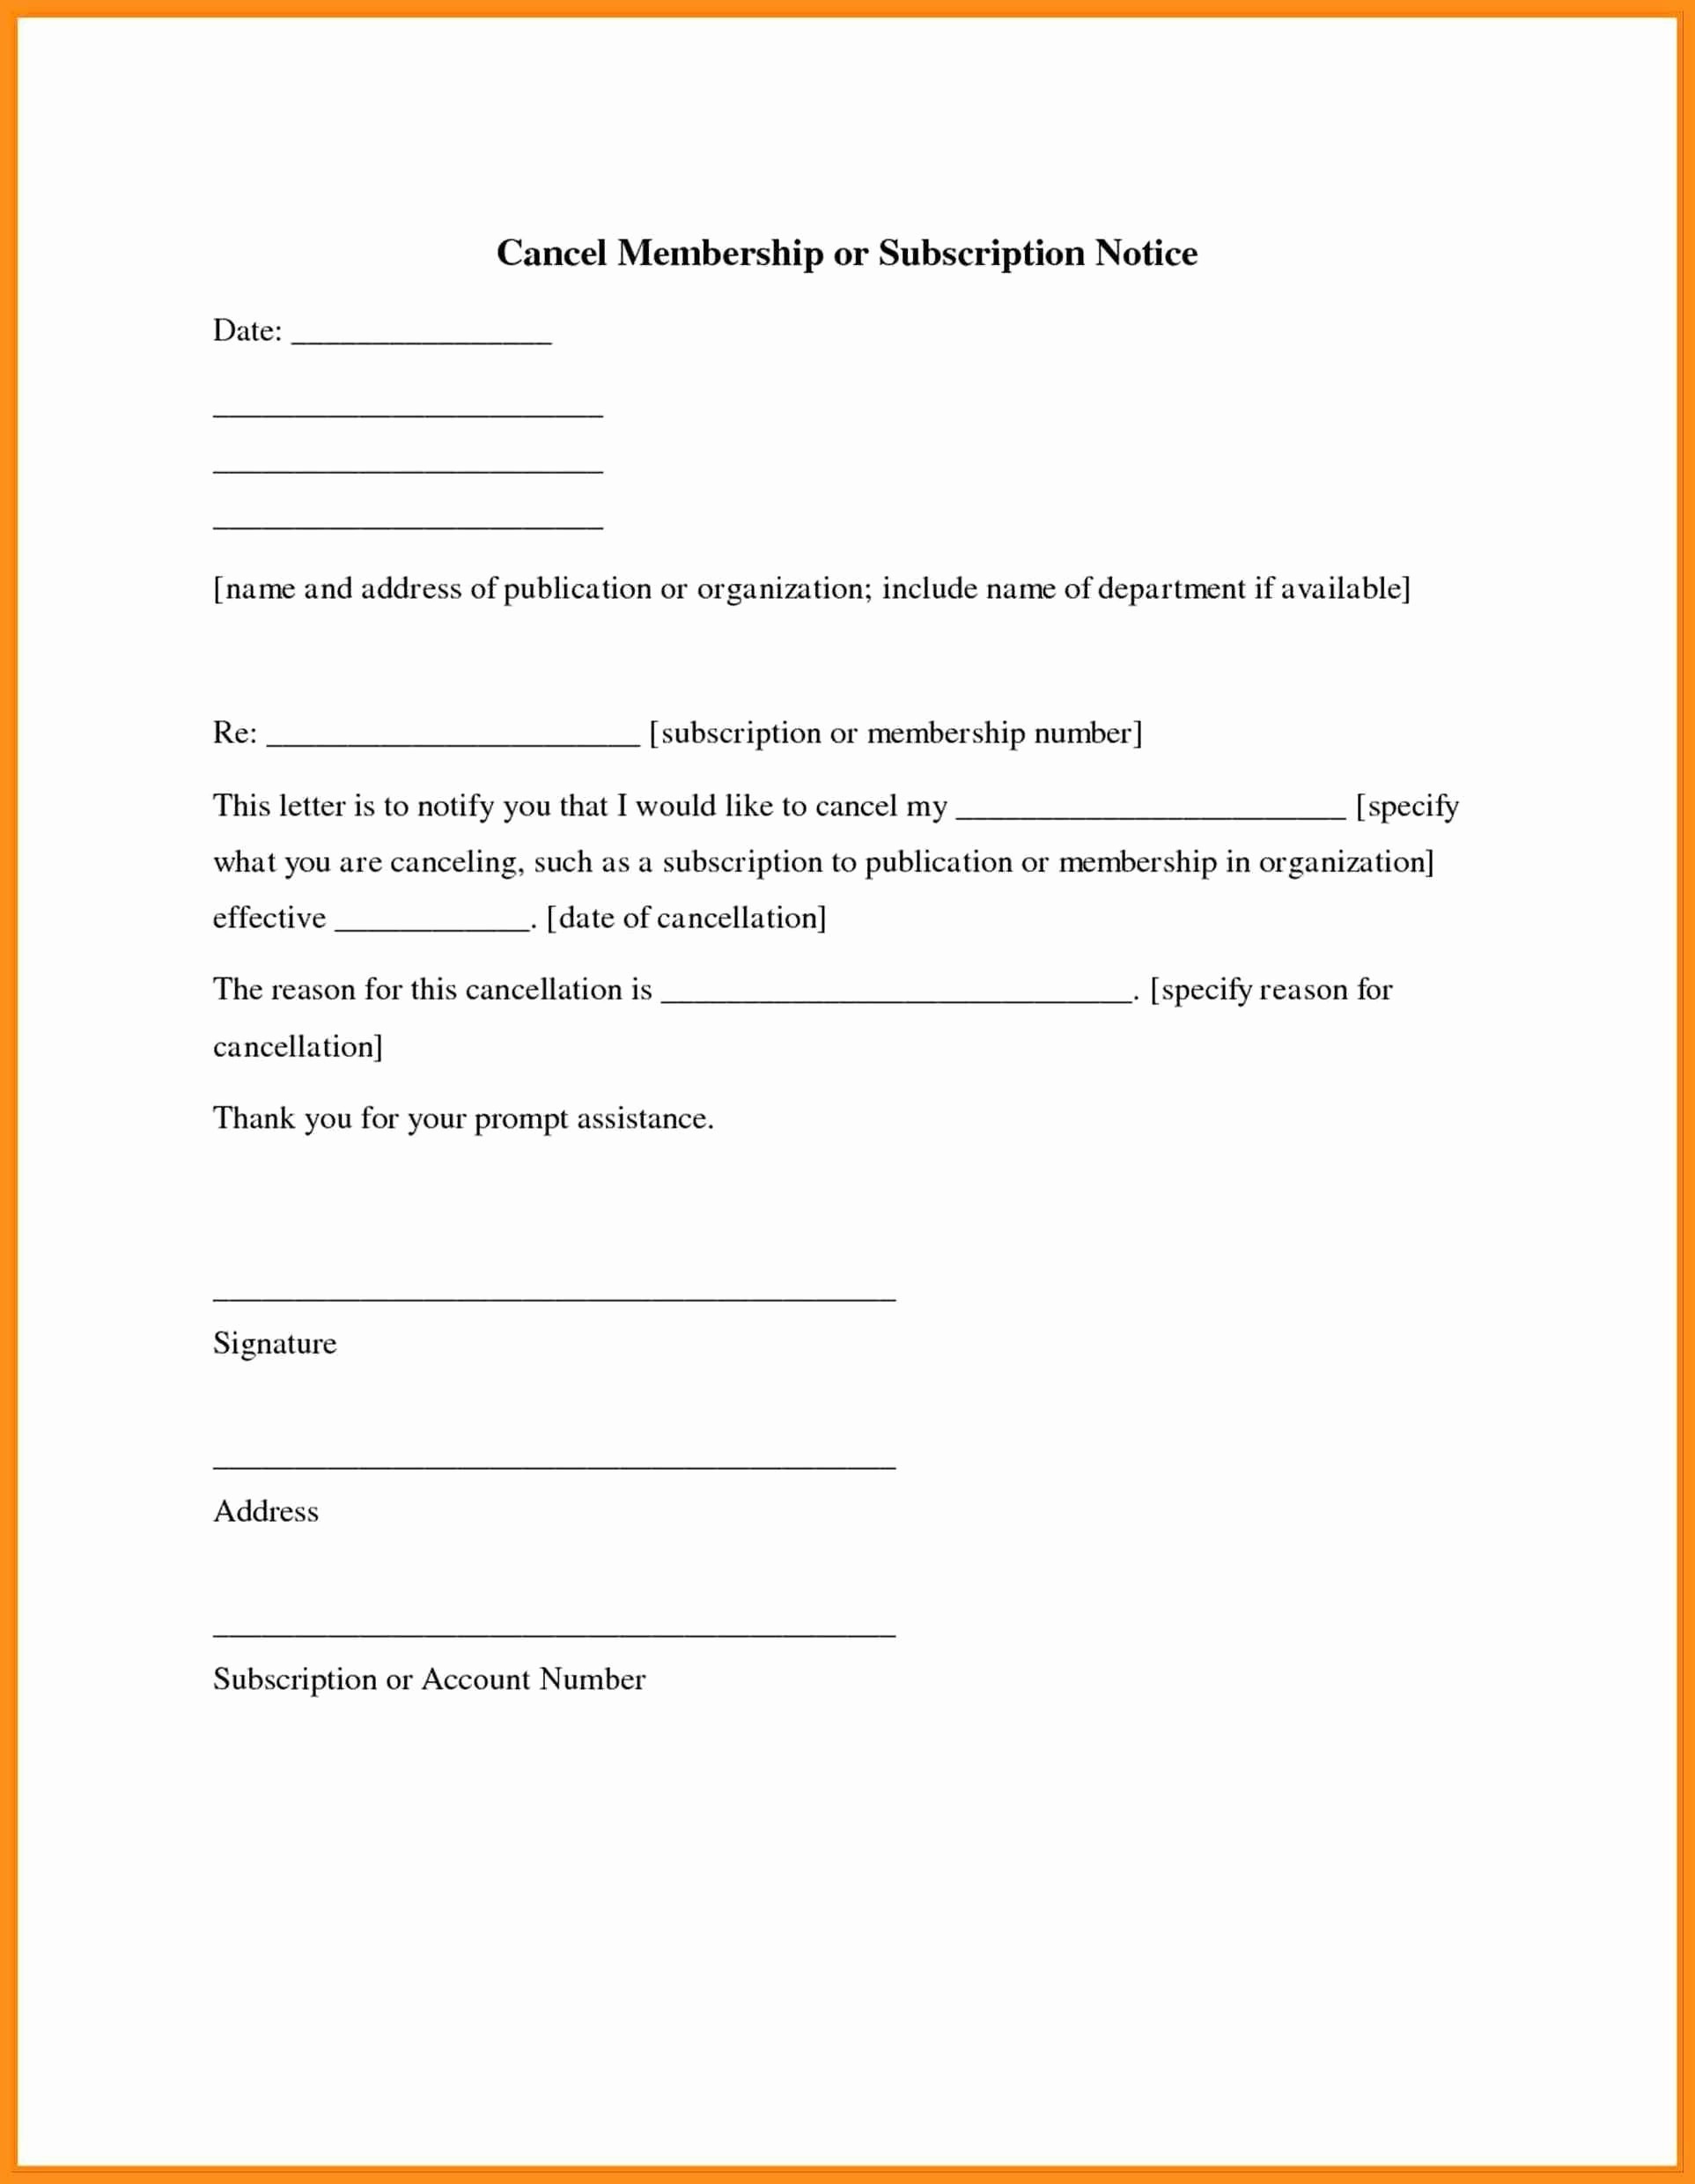 Insurance Cancellation Letter Template - Impressive Insurance Cancellation Letter Template